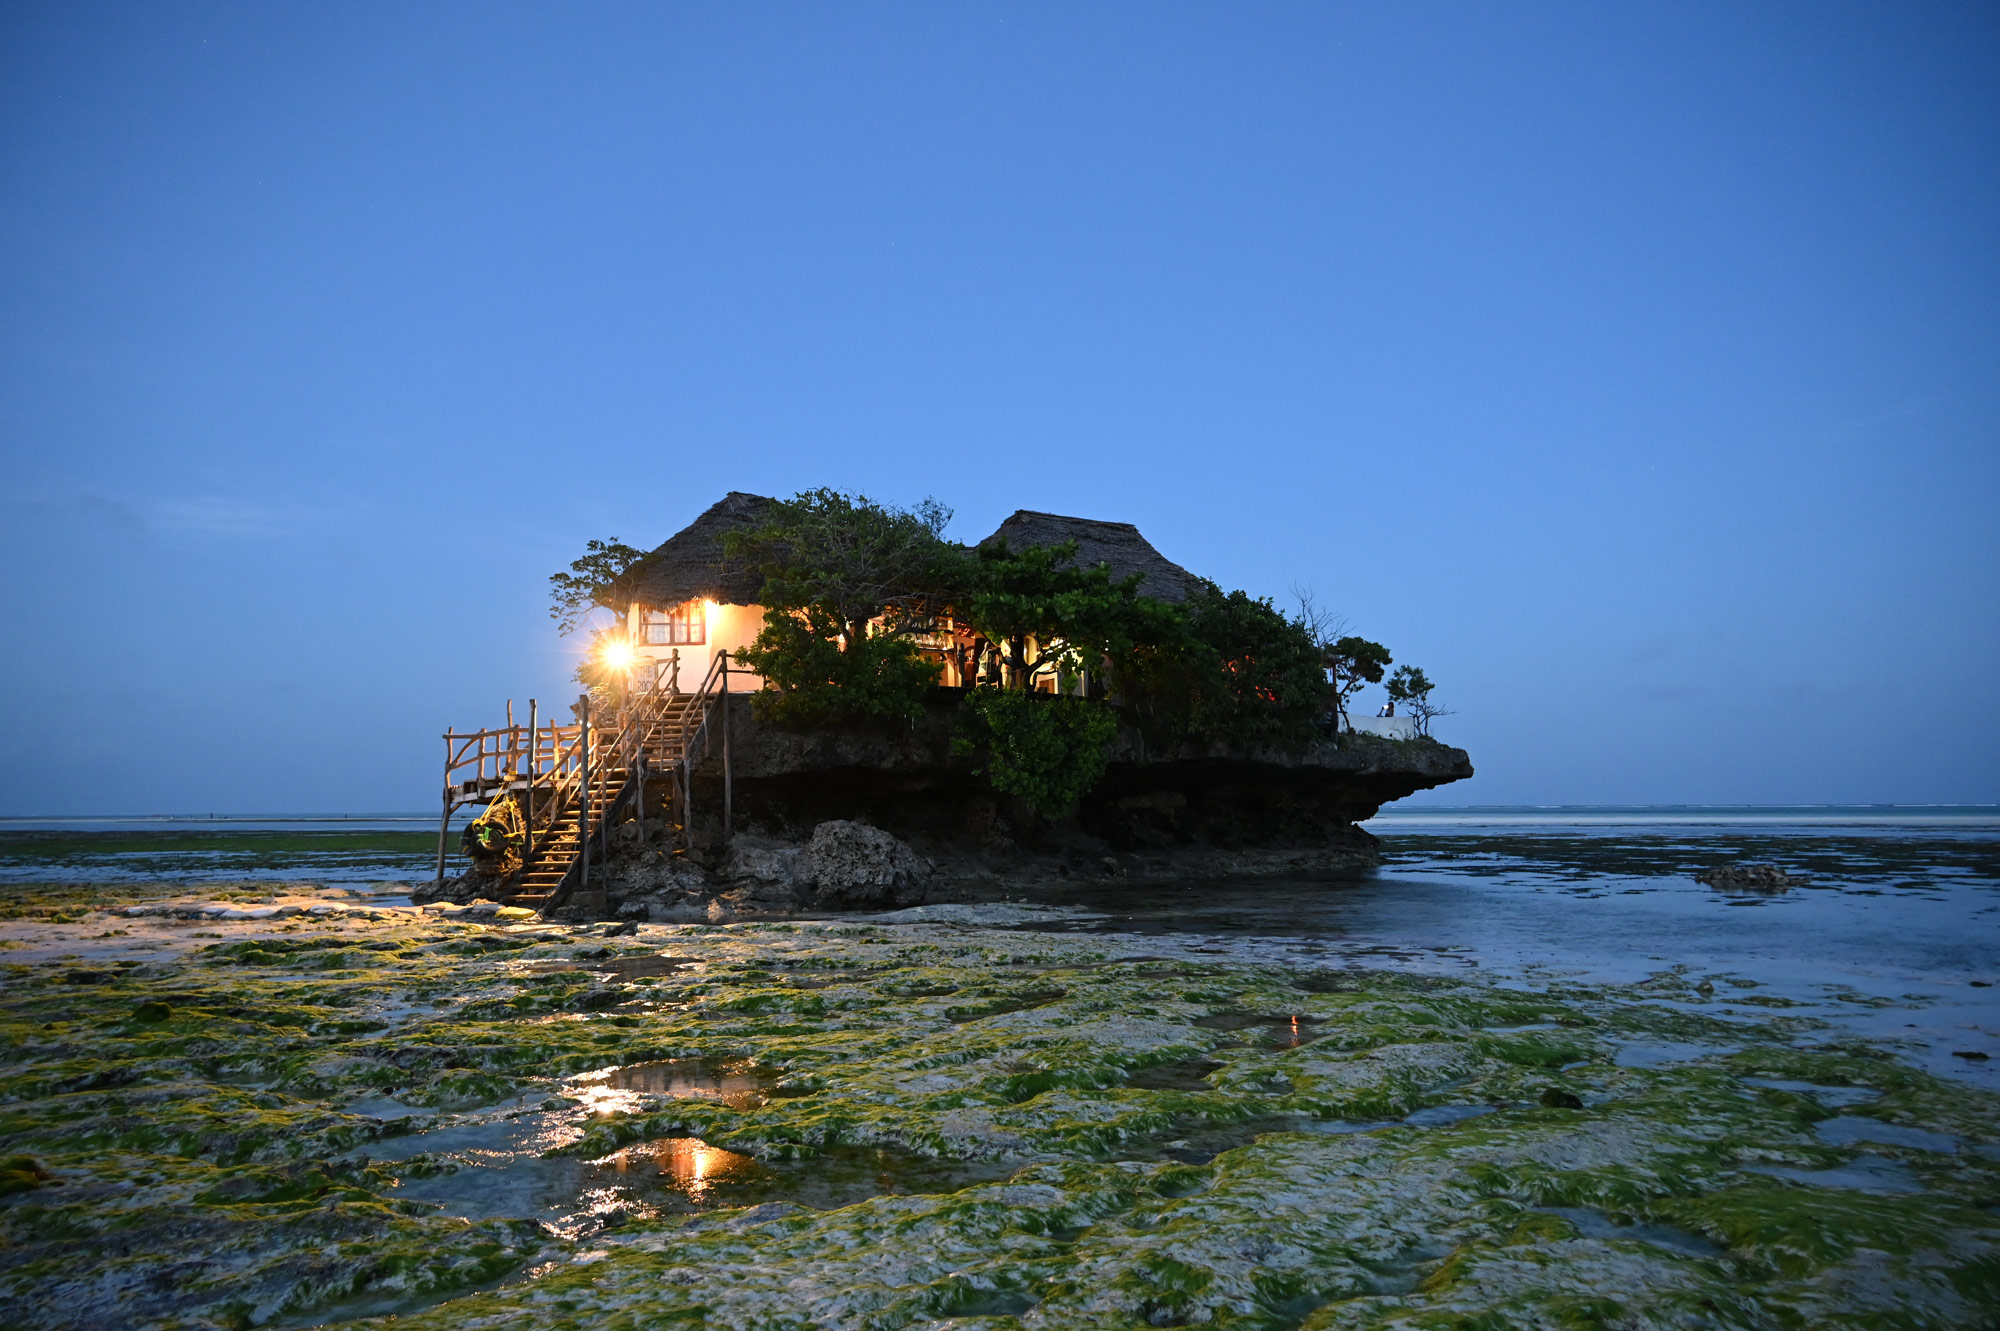 Low light photo of a house built on rocks at the shore, taken with NIKKOR Z 24-200mm f/4-6.3 VR